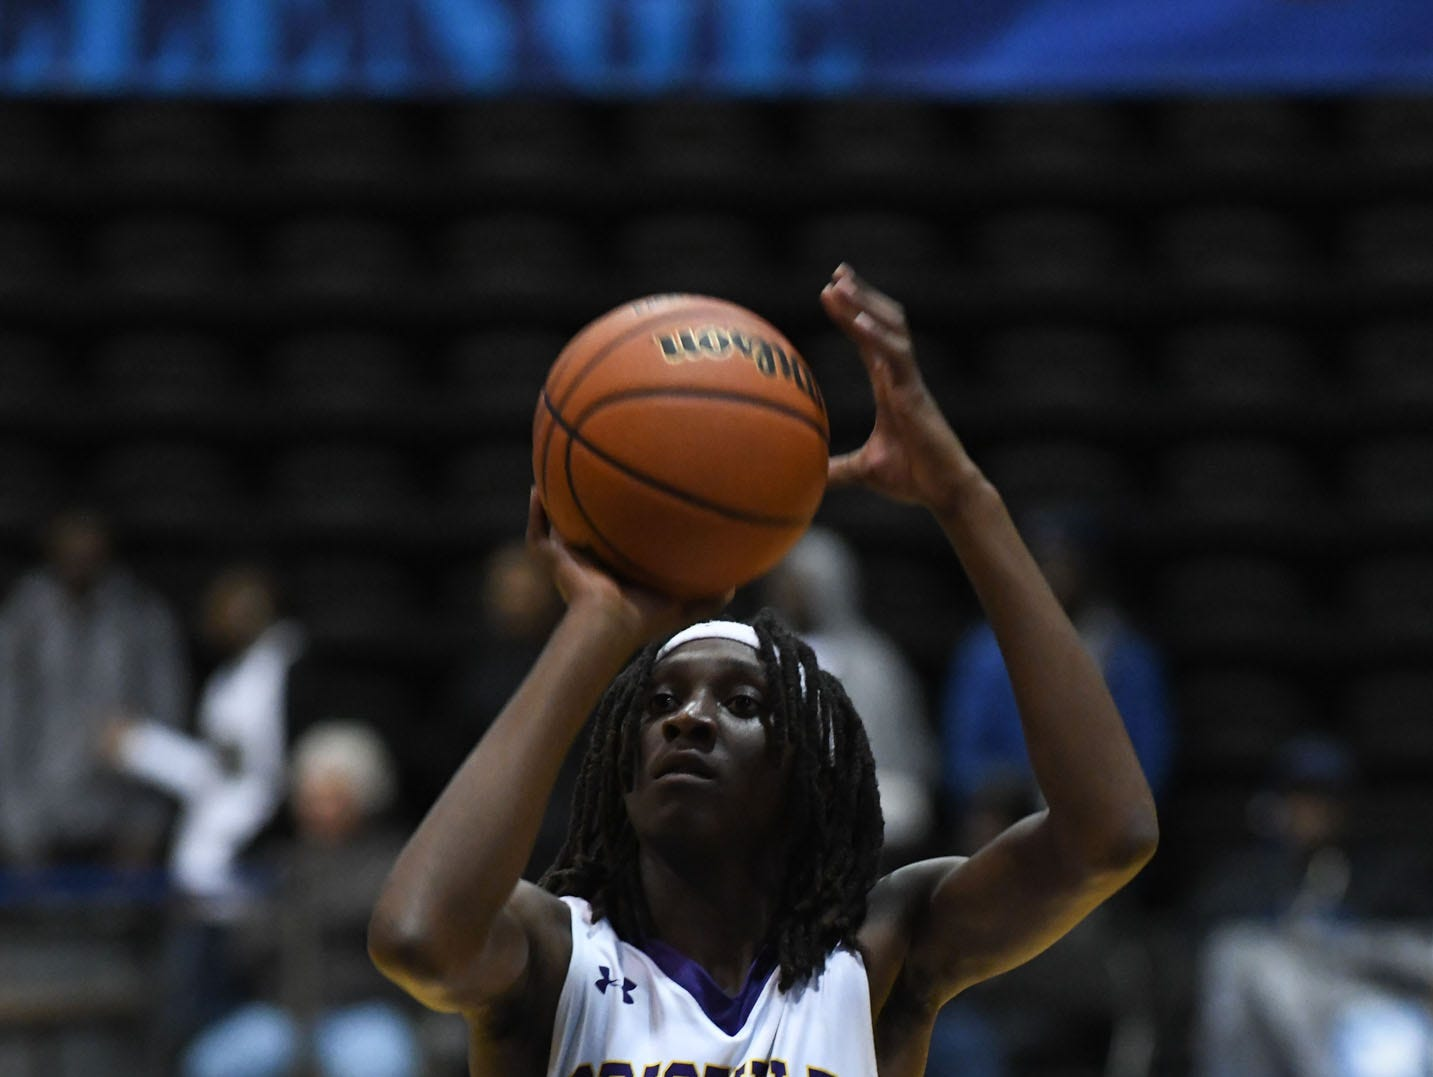 Crisfield's CorTrey Fontaine with the foul shot against Dunbar on Thursday, Dec. 26, 2018 during the Governor's Challenge in Salisbury, Md.